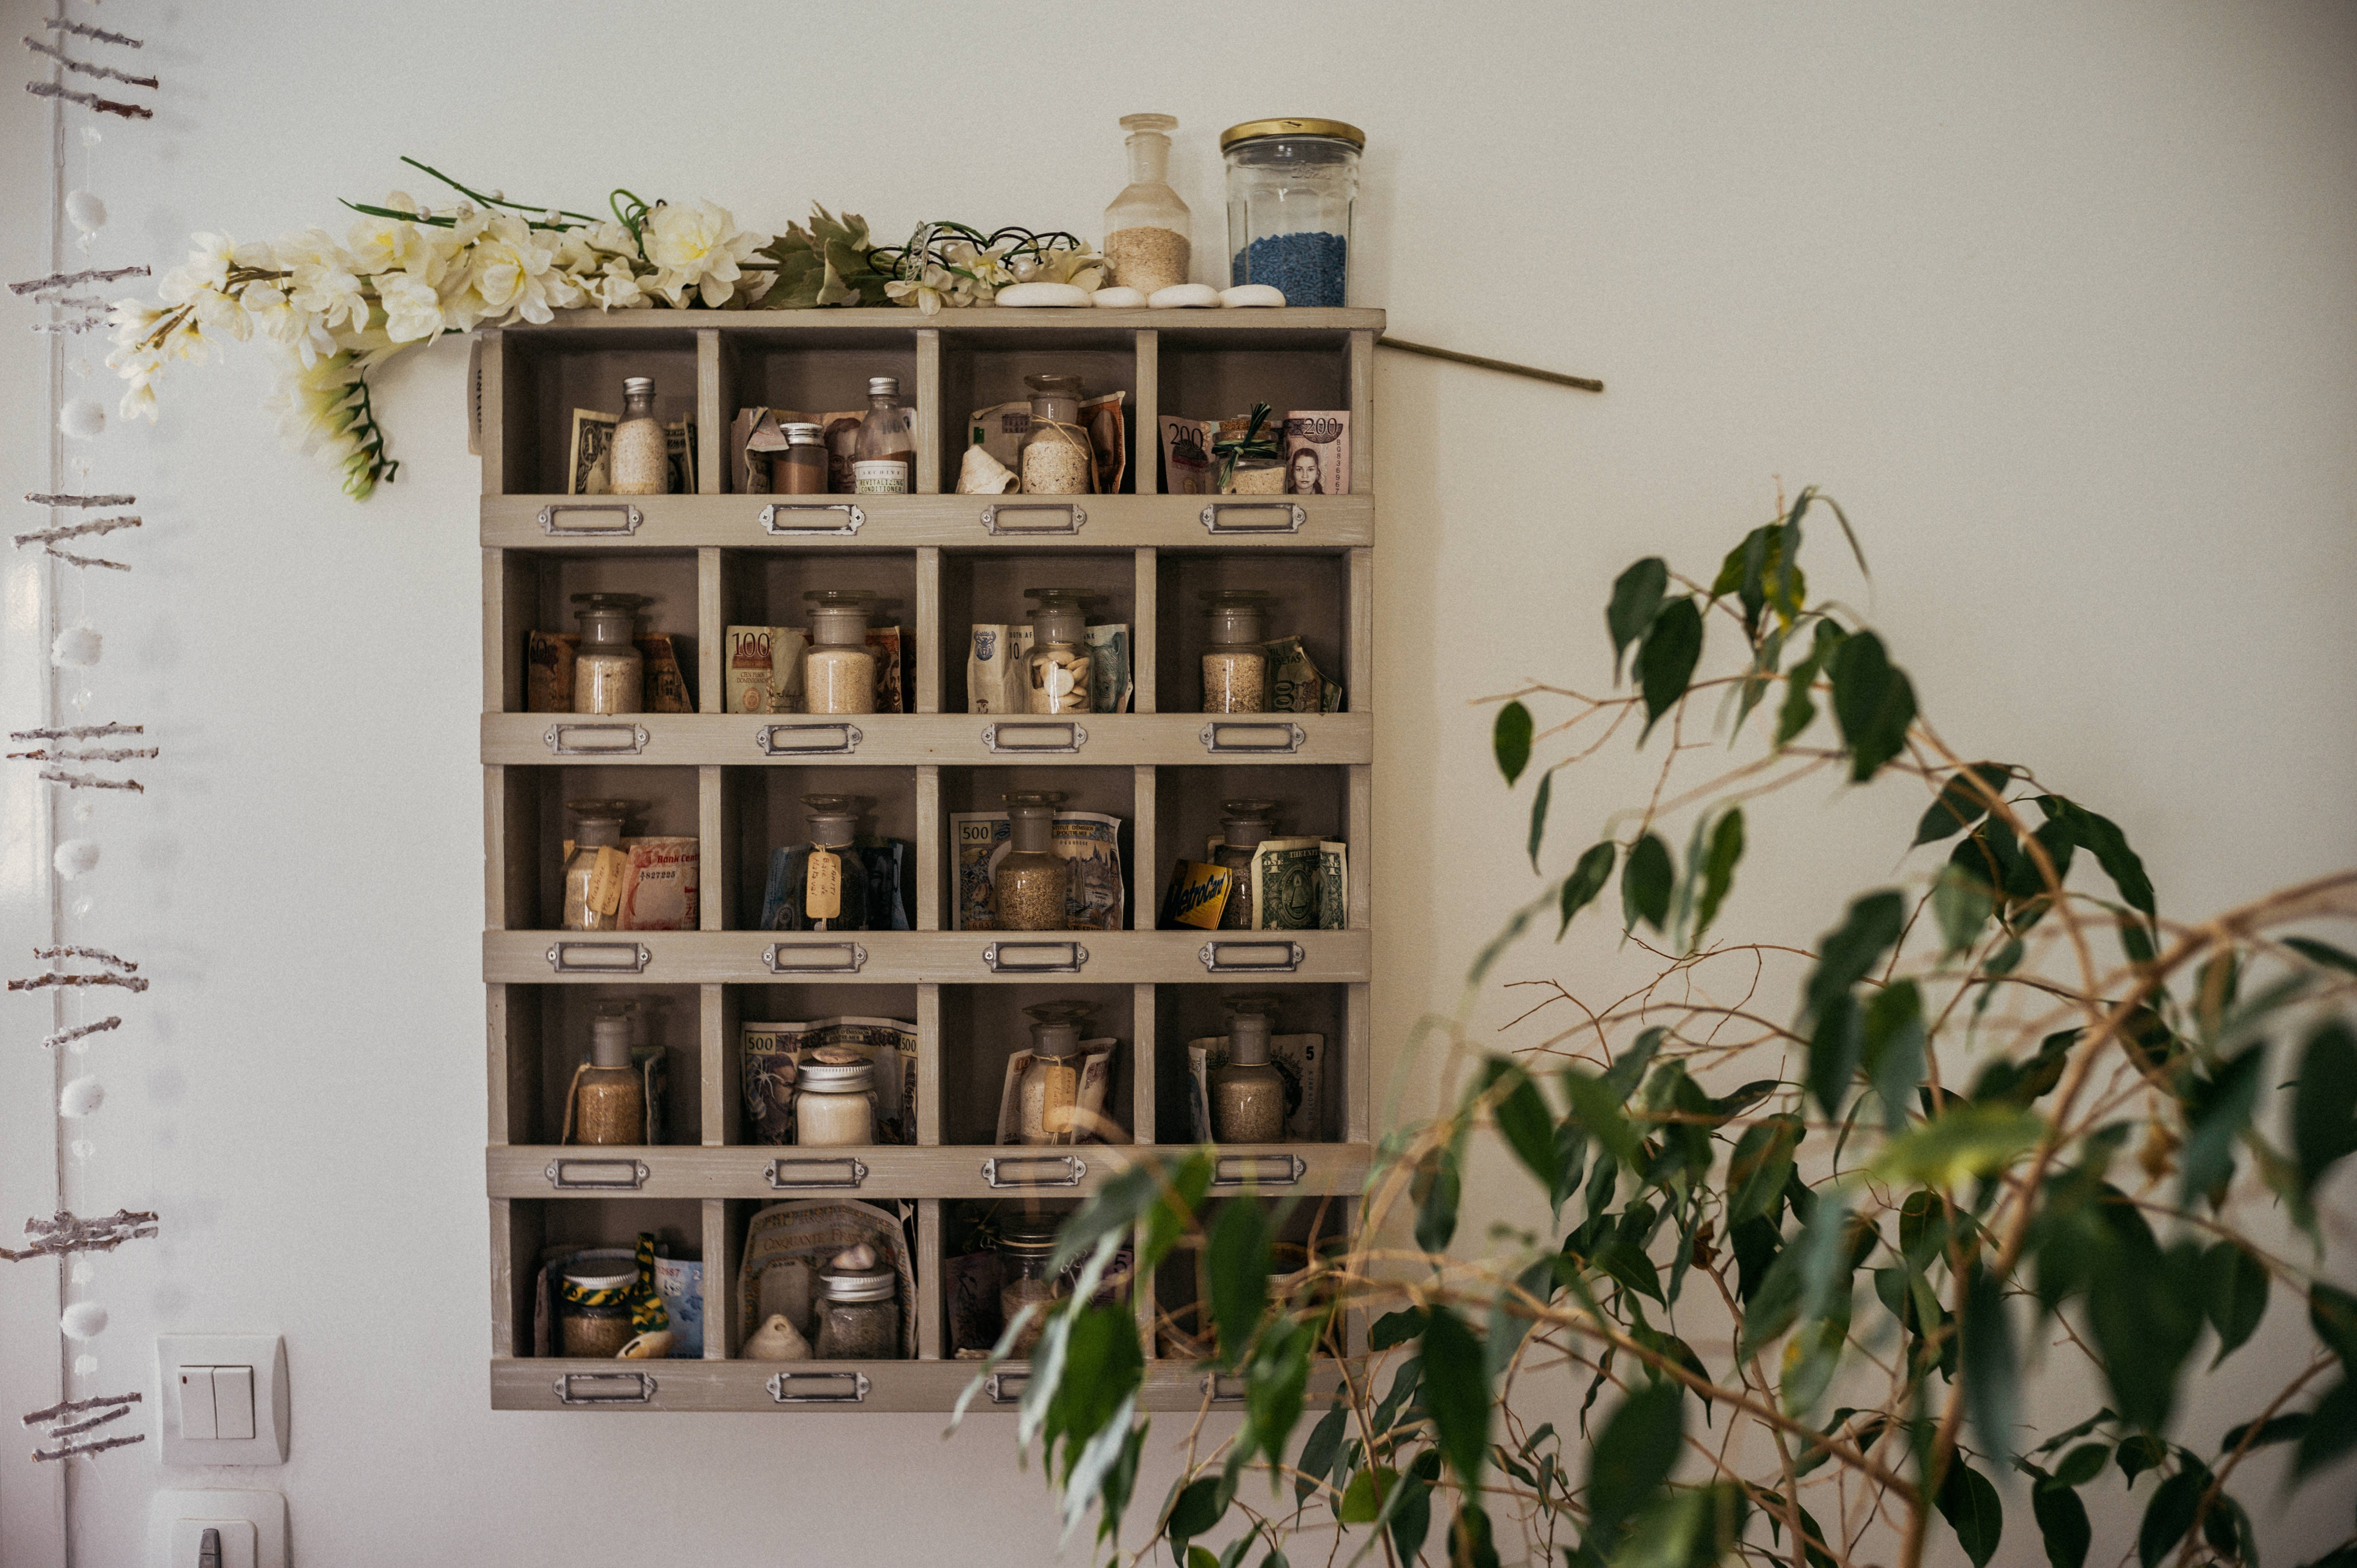 weeping fig plant beside shelf